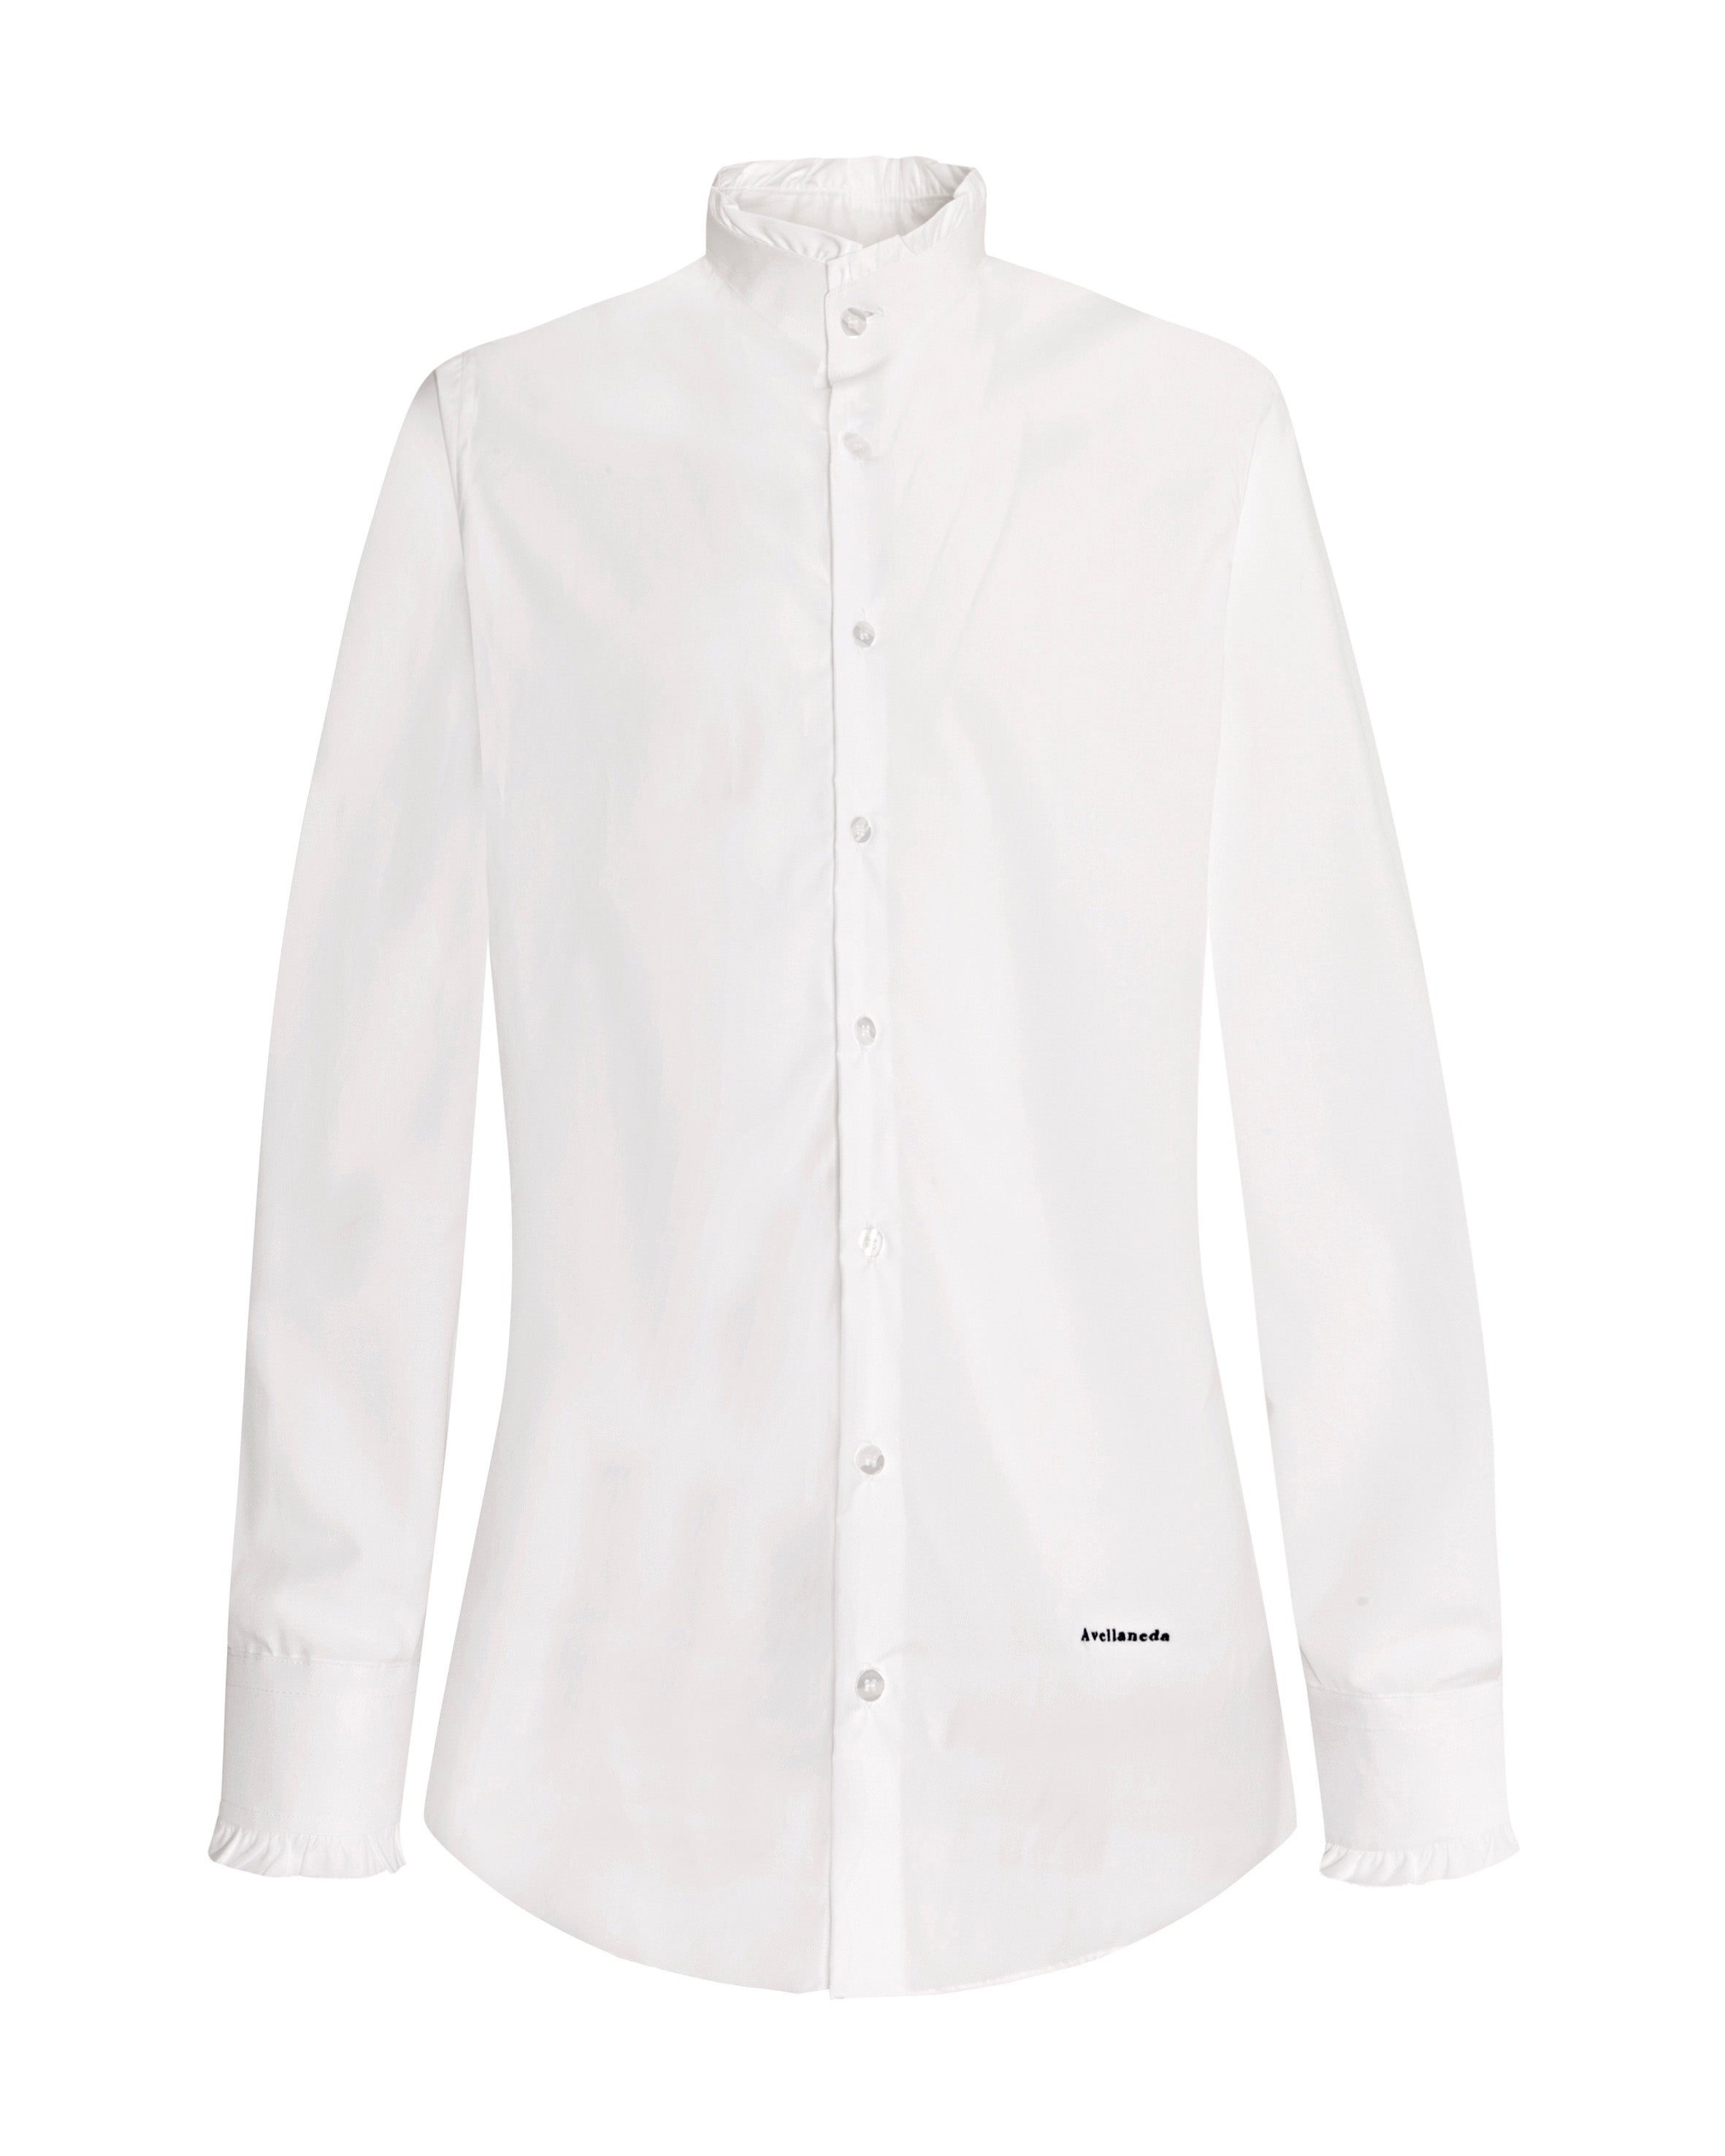 WOMEN'S NECK & CUFFS FRILL WHITE SHIRT